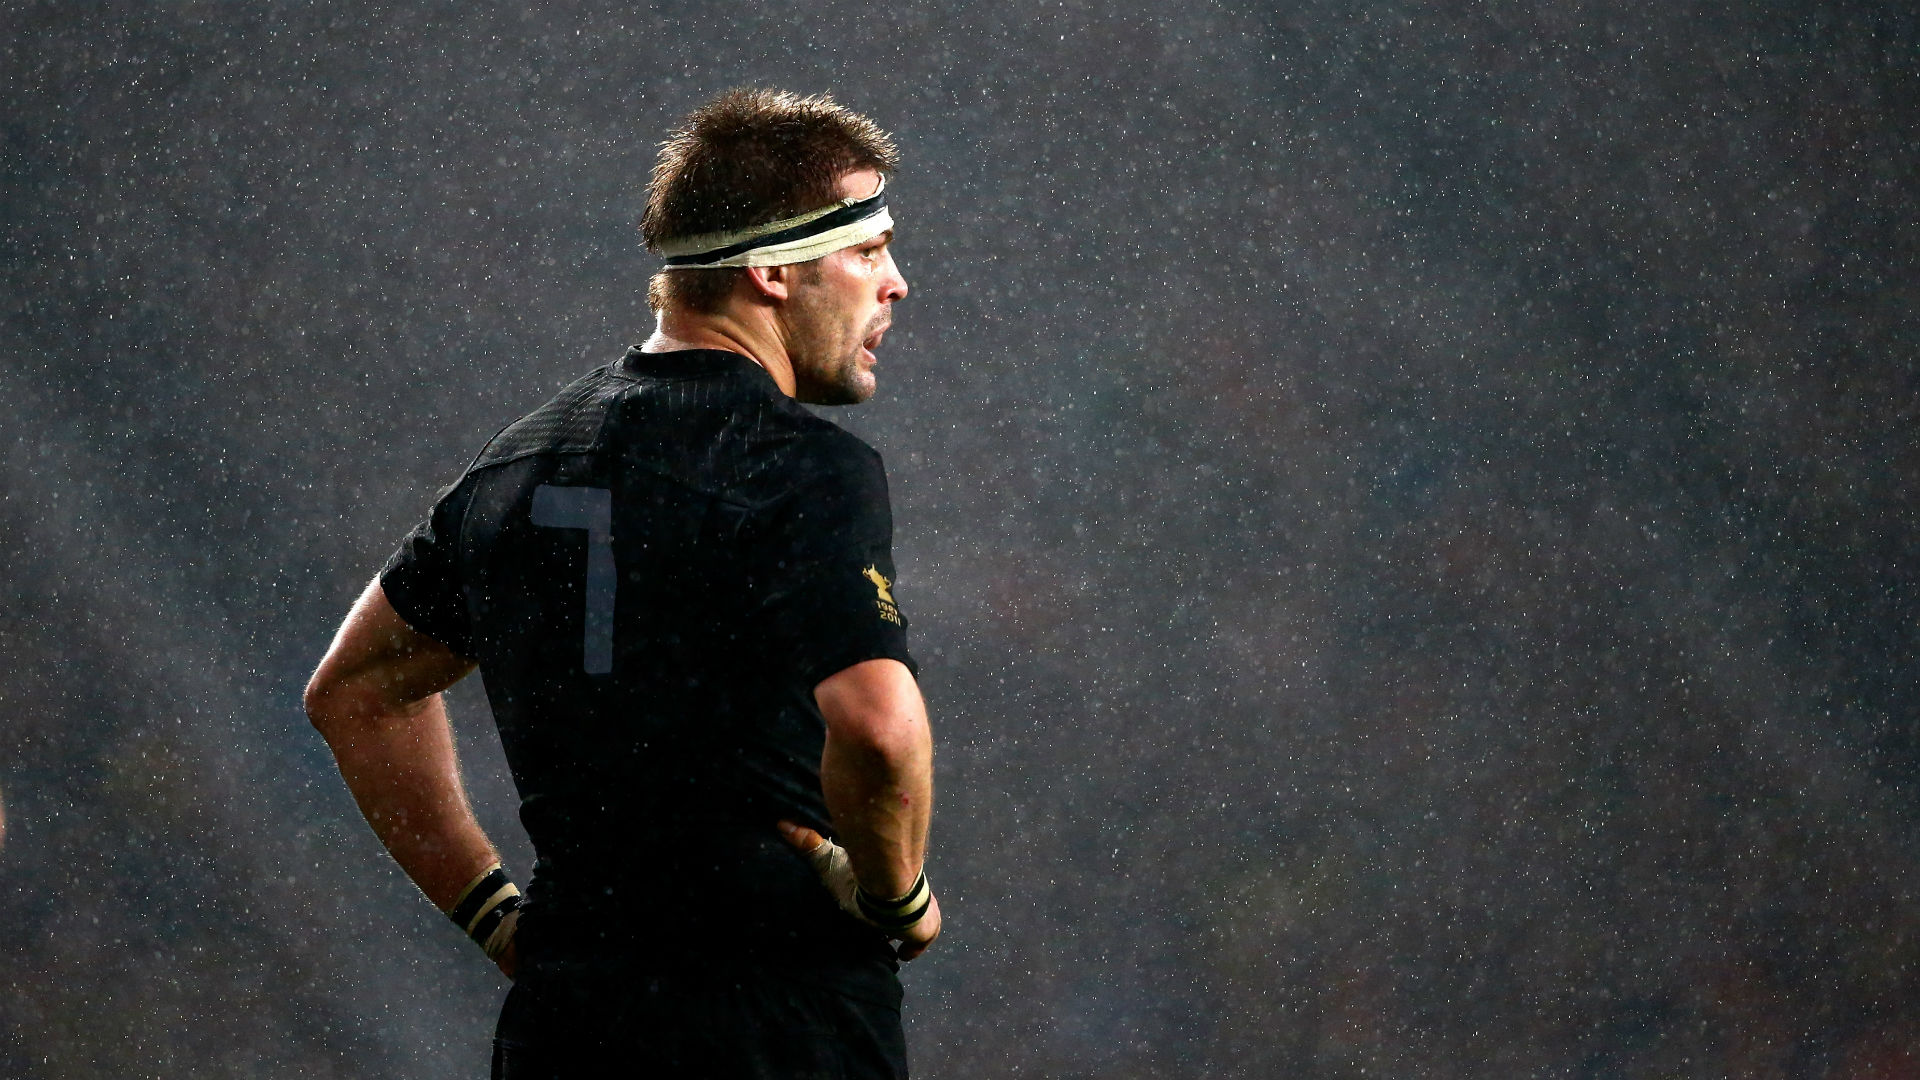 We Knew It Would Be A Battle Richie Mccaw Sporting News